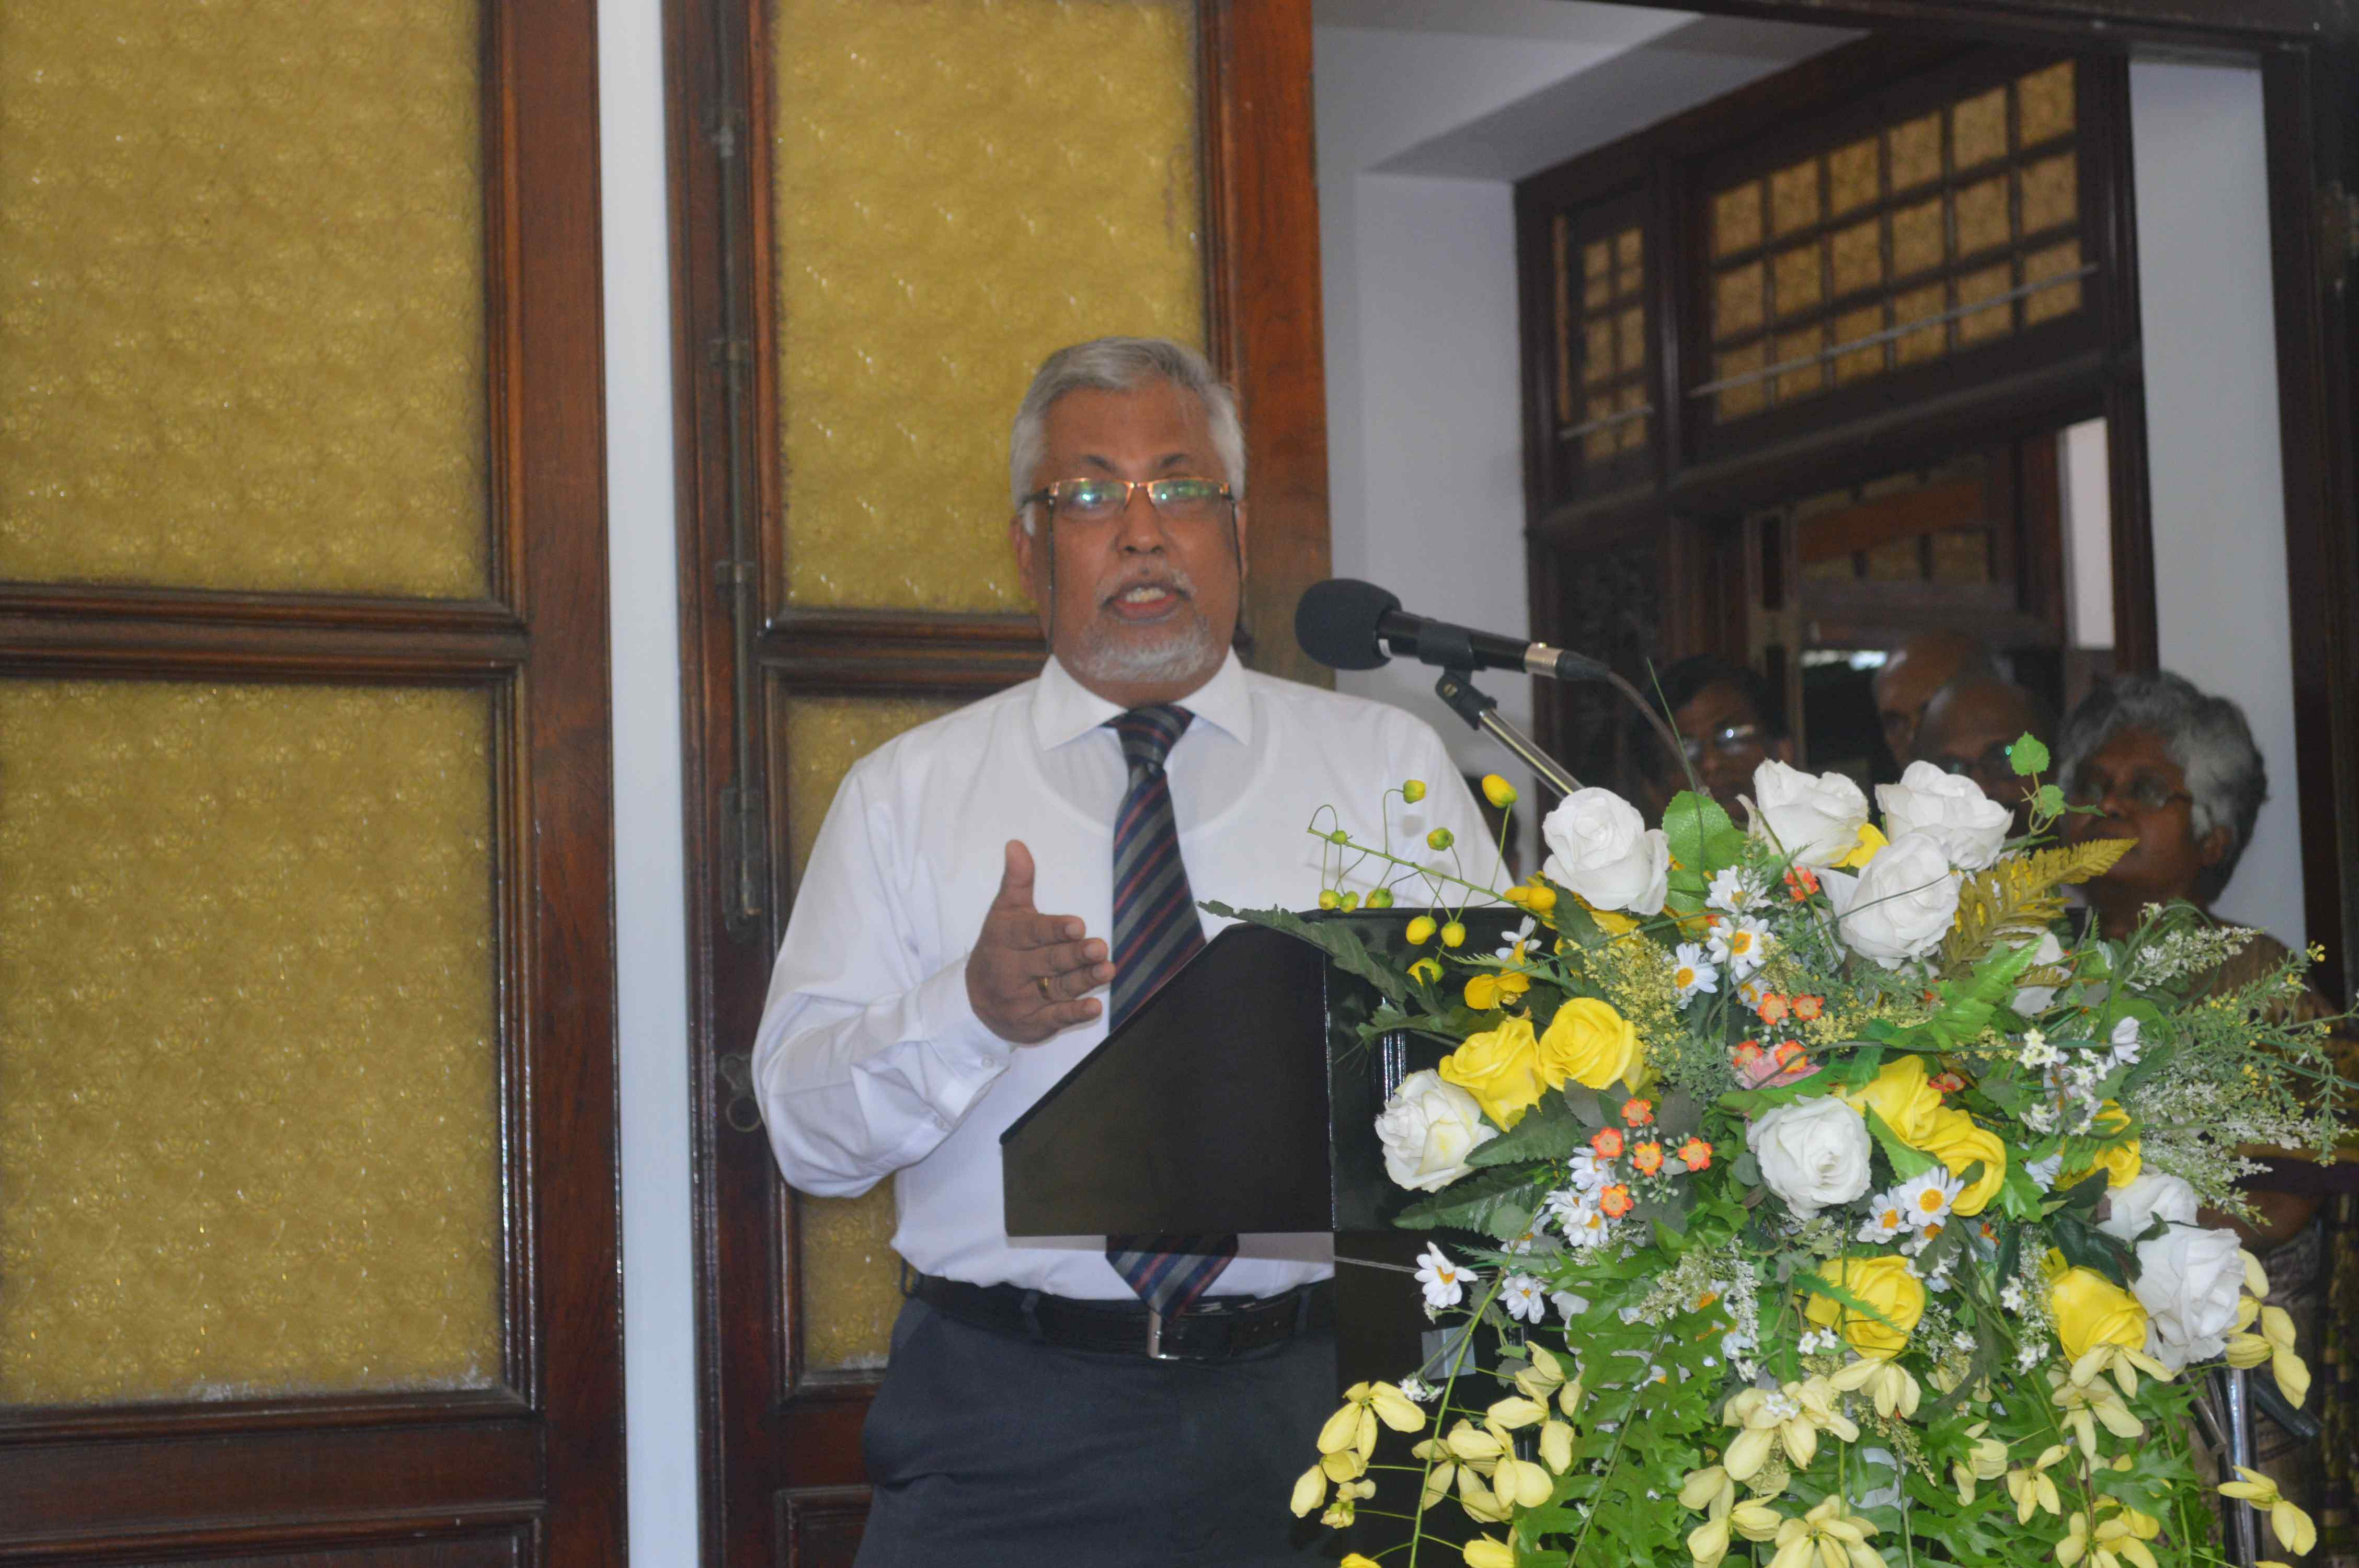 Newly appointed Vice-Chancellor Senior Prof. Lakshman Dissanayake